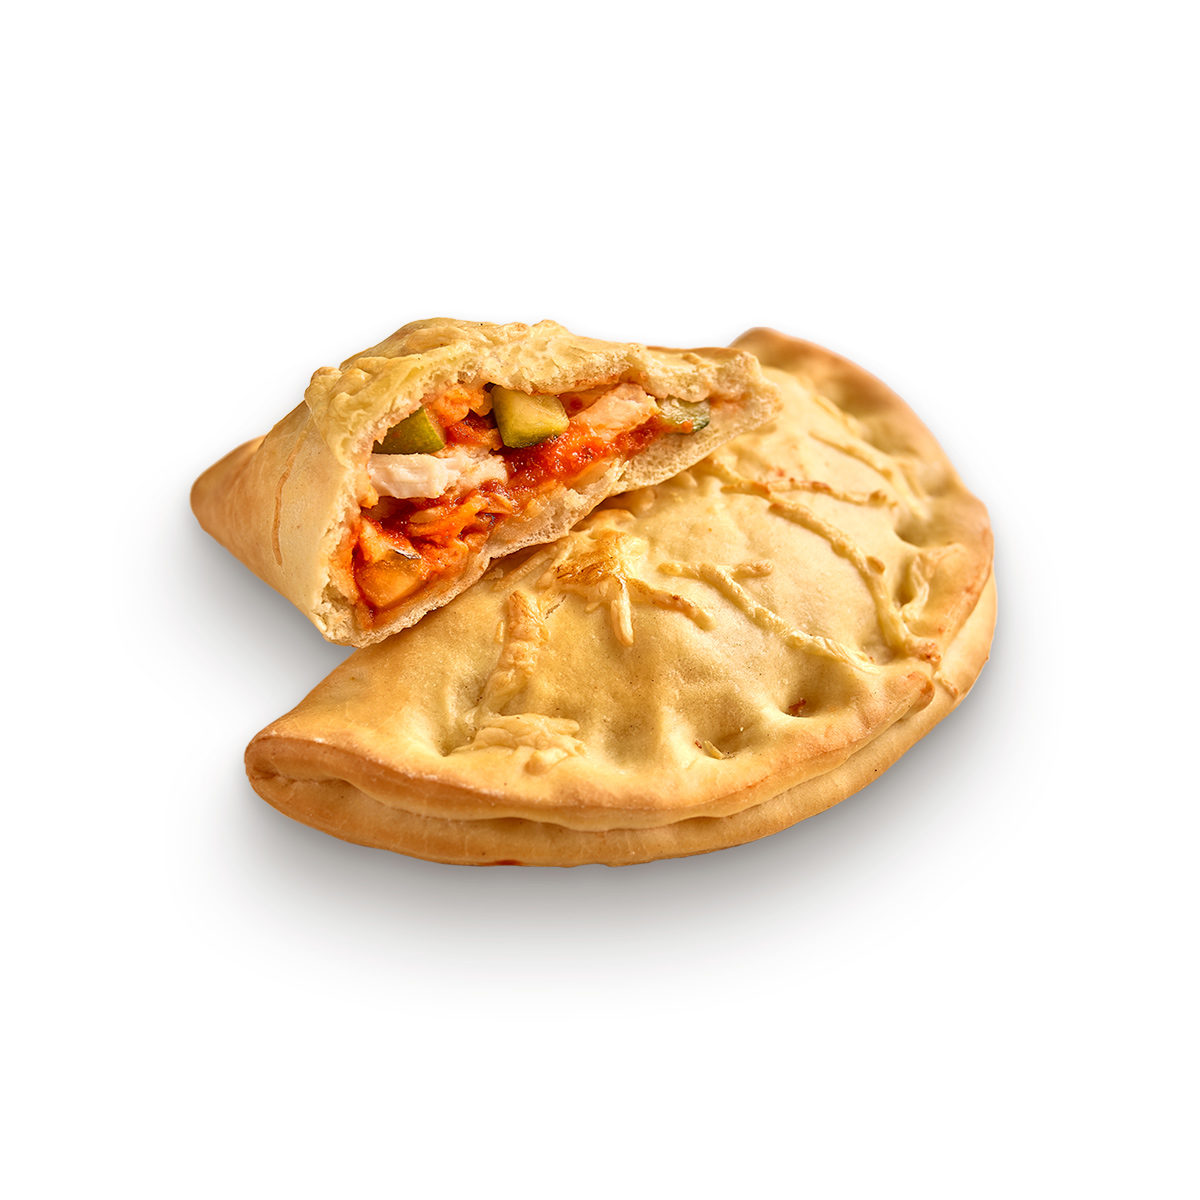 Courgette and chicken calzone